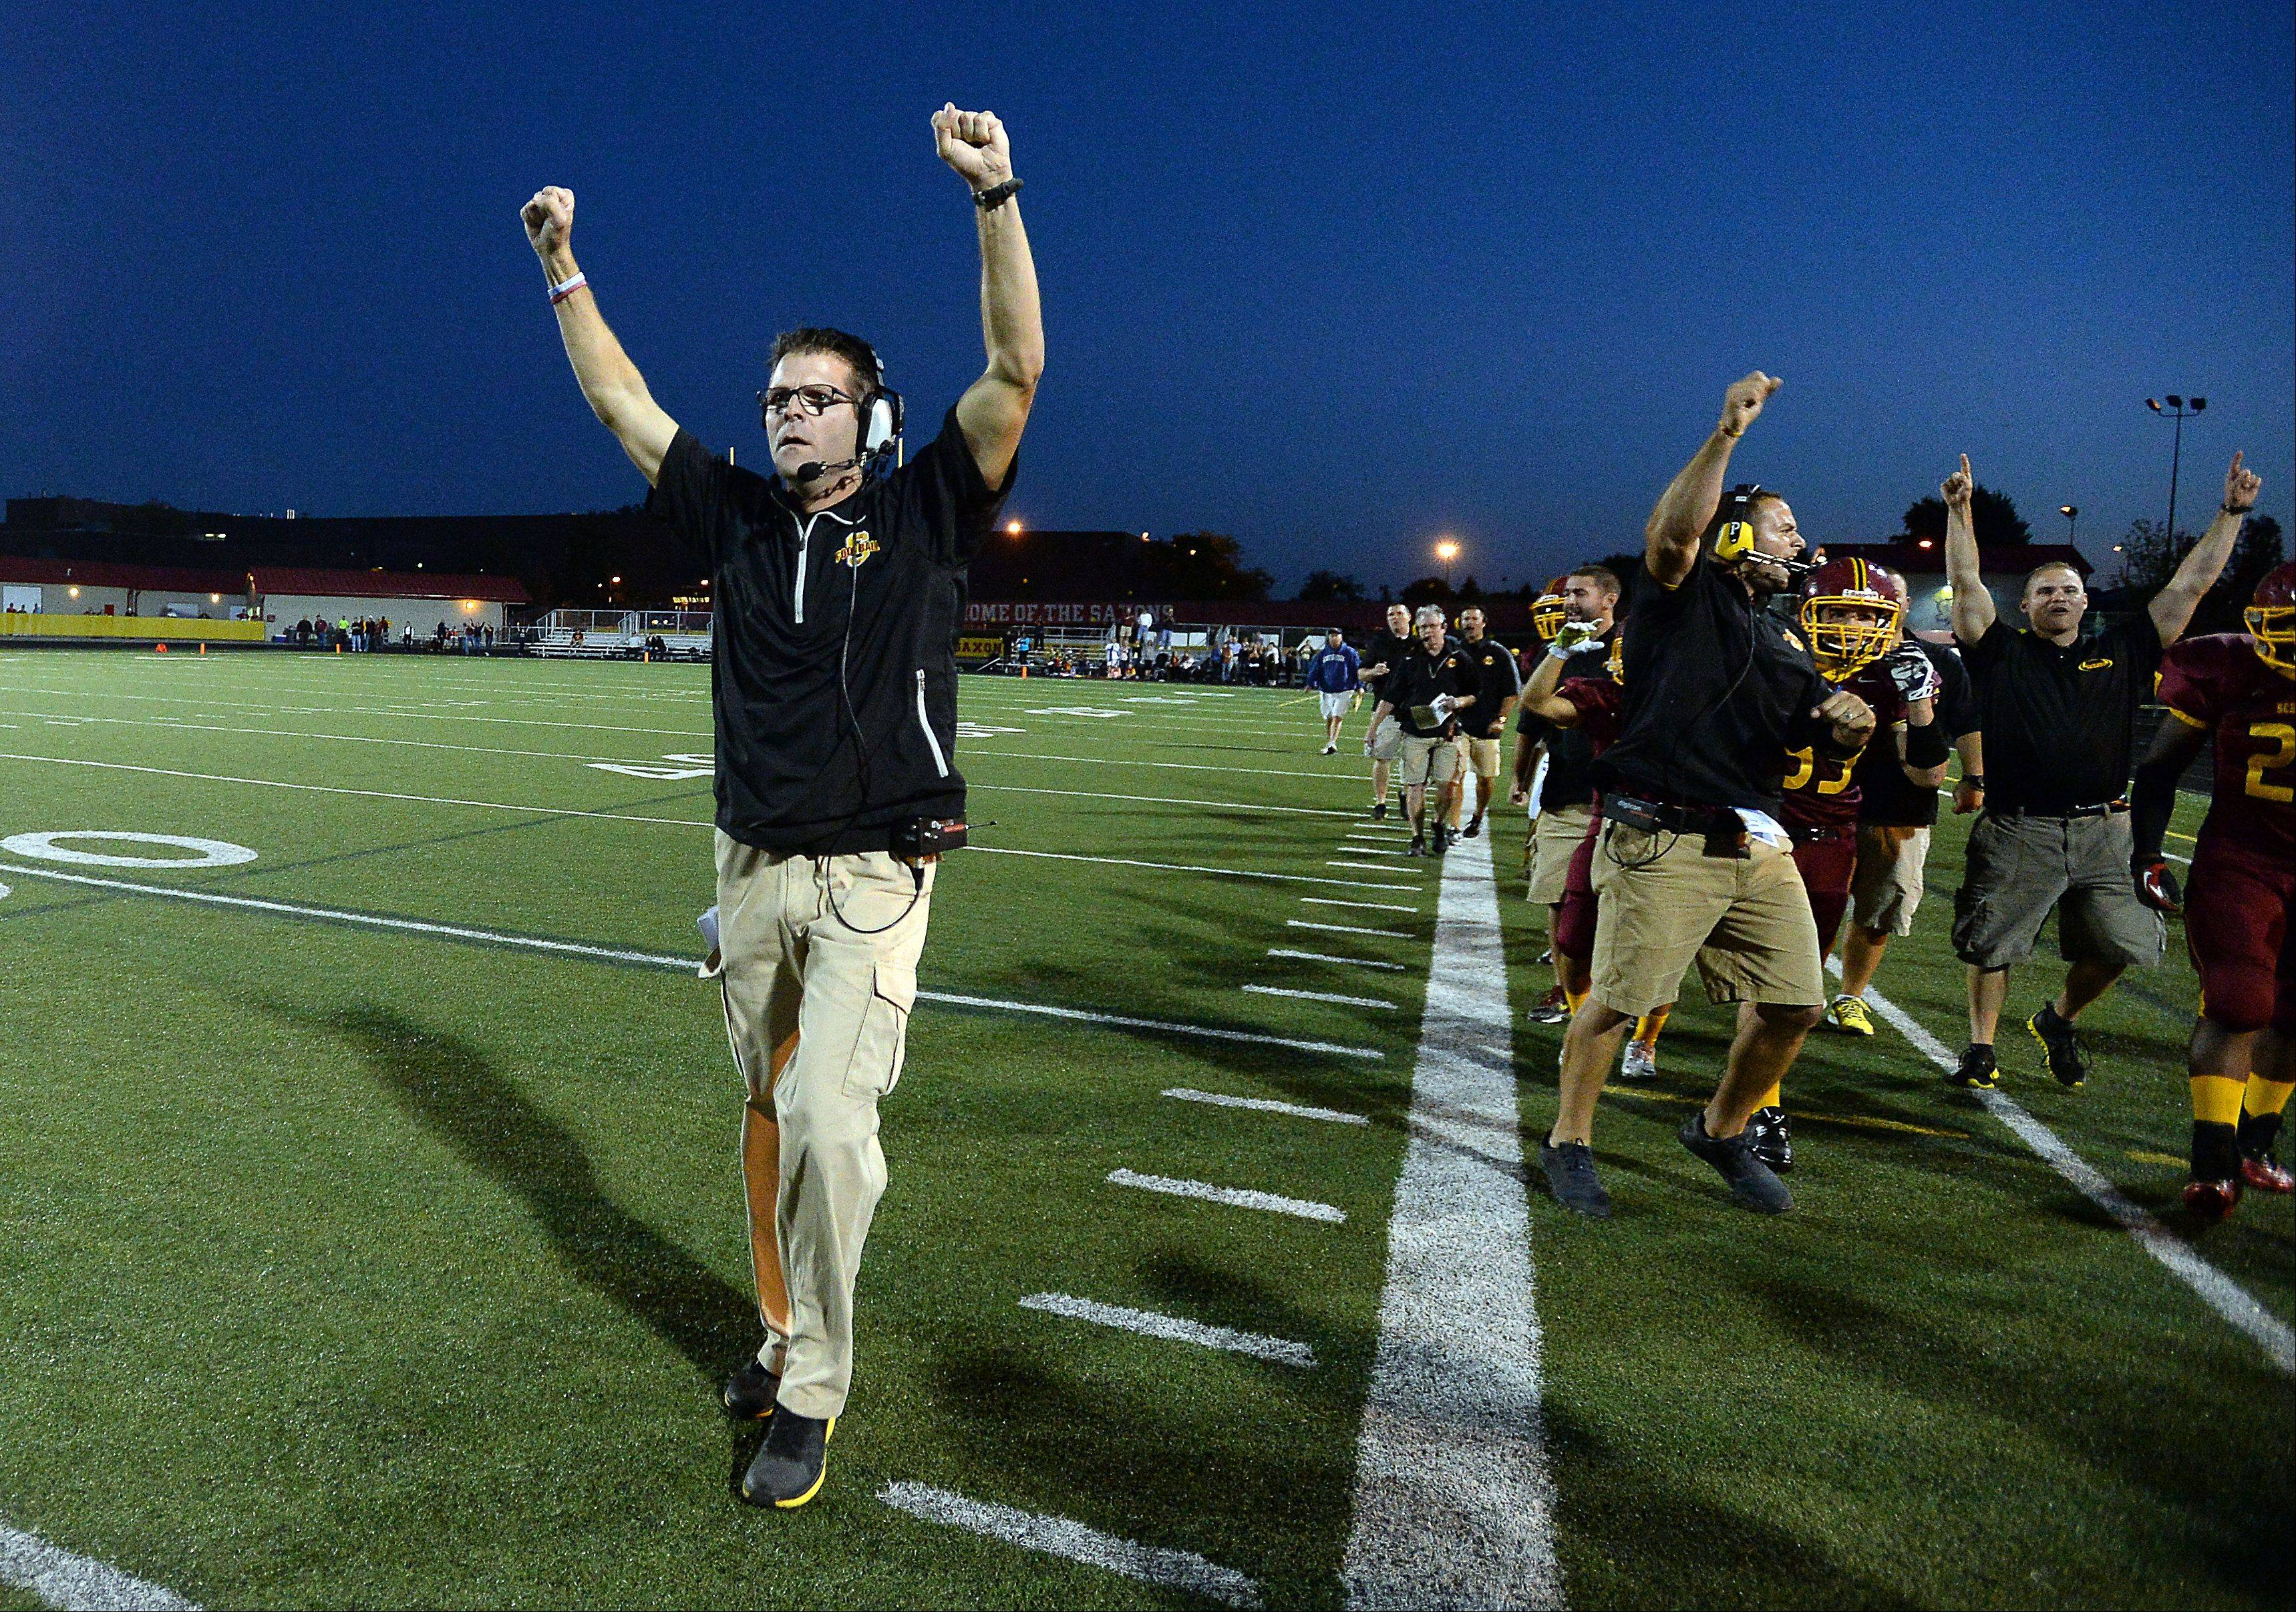 Schaumburg's head coach Mark Stilling celebrates a Luke Gruszka 62-yard touchdown run in the first quarter.